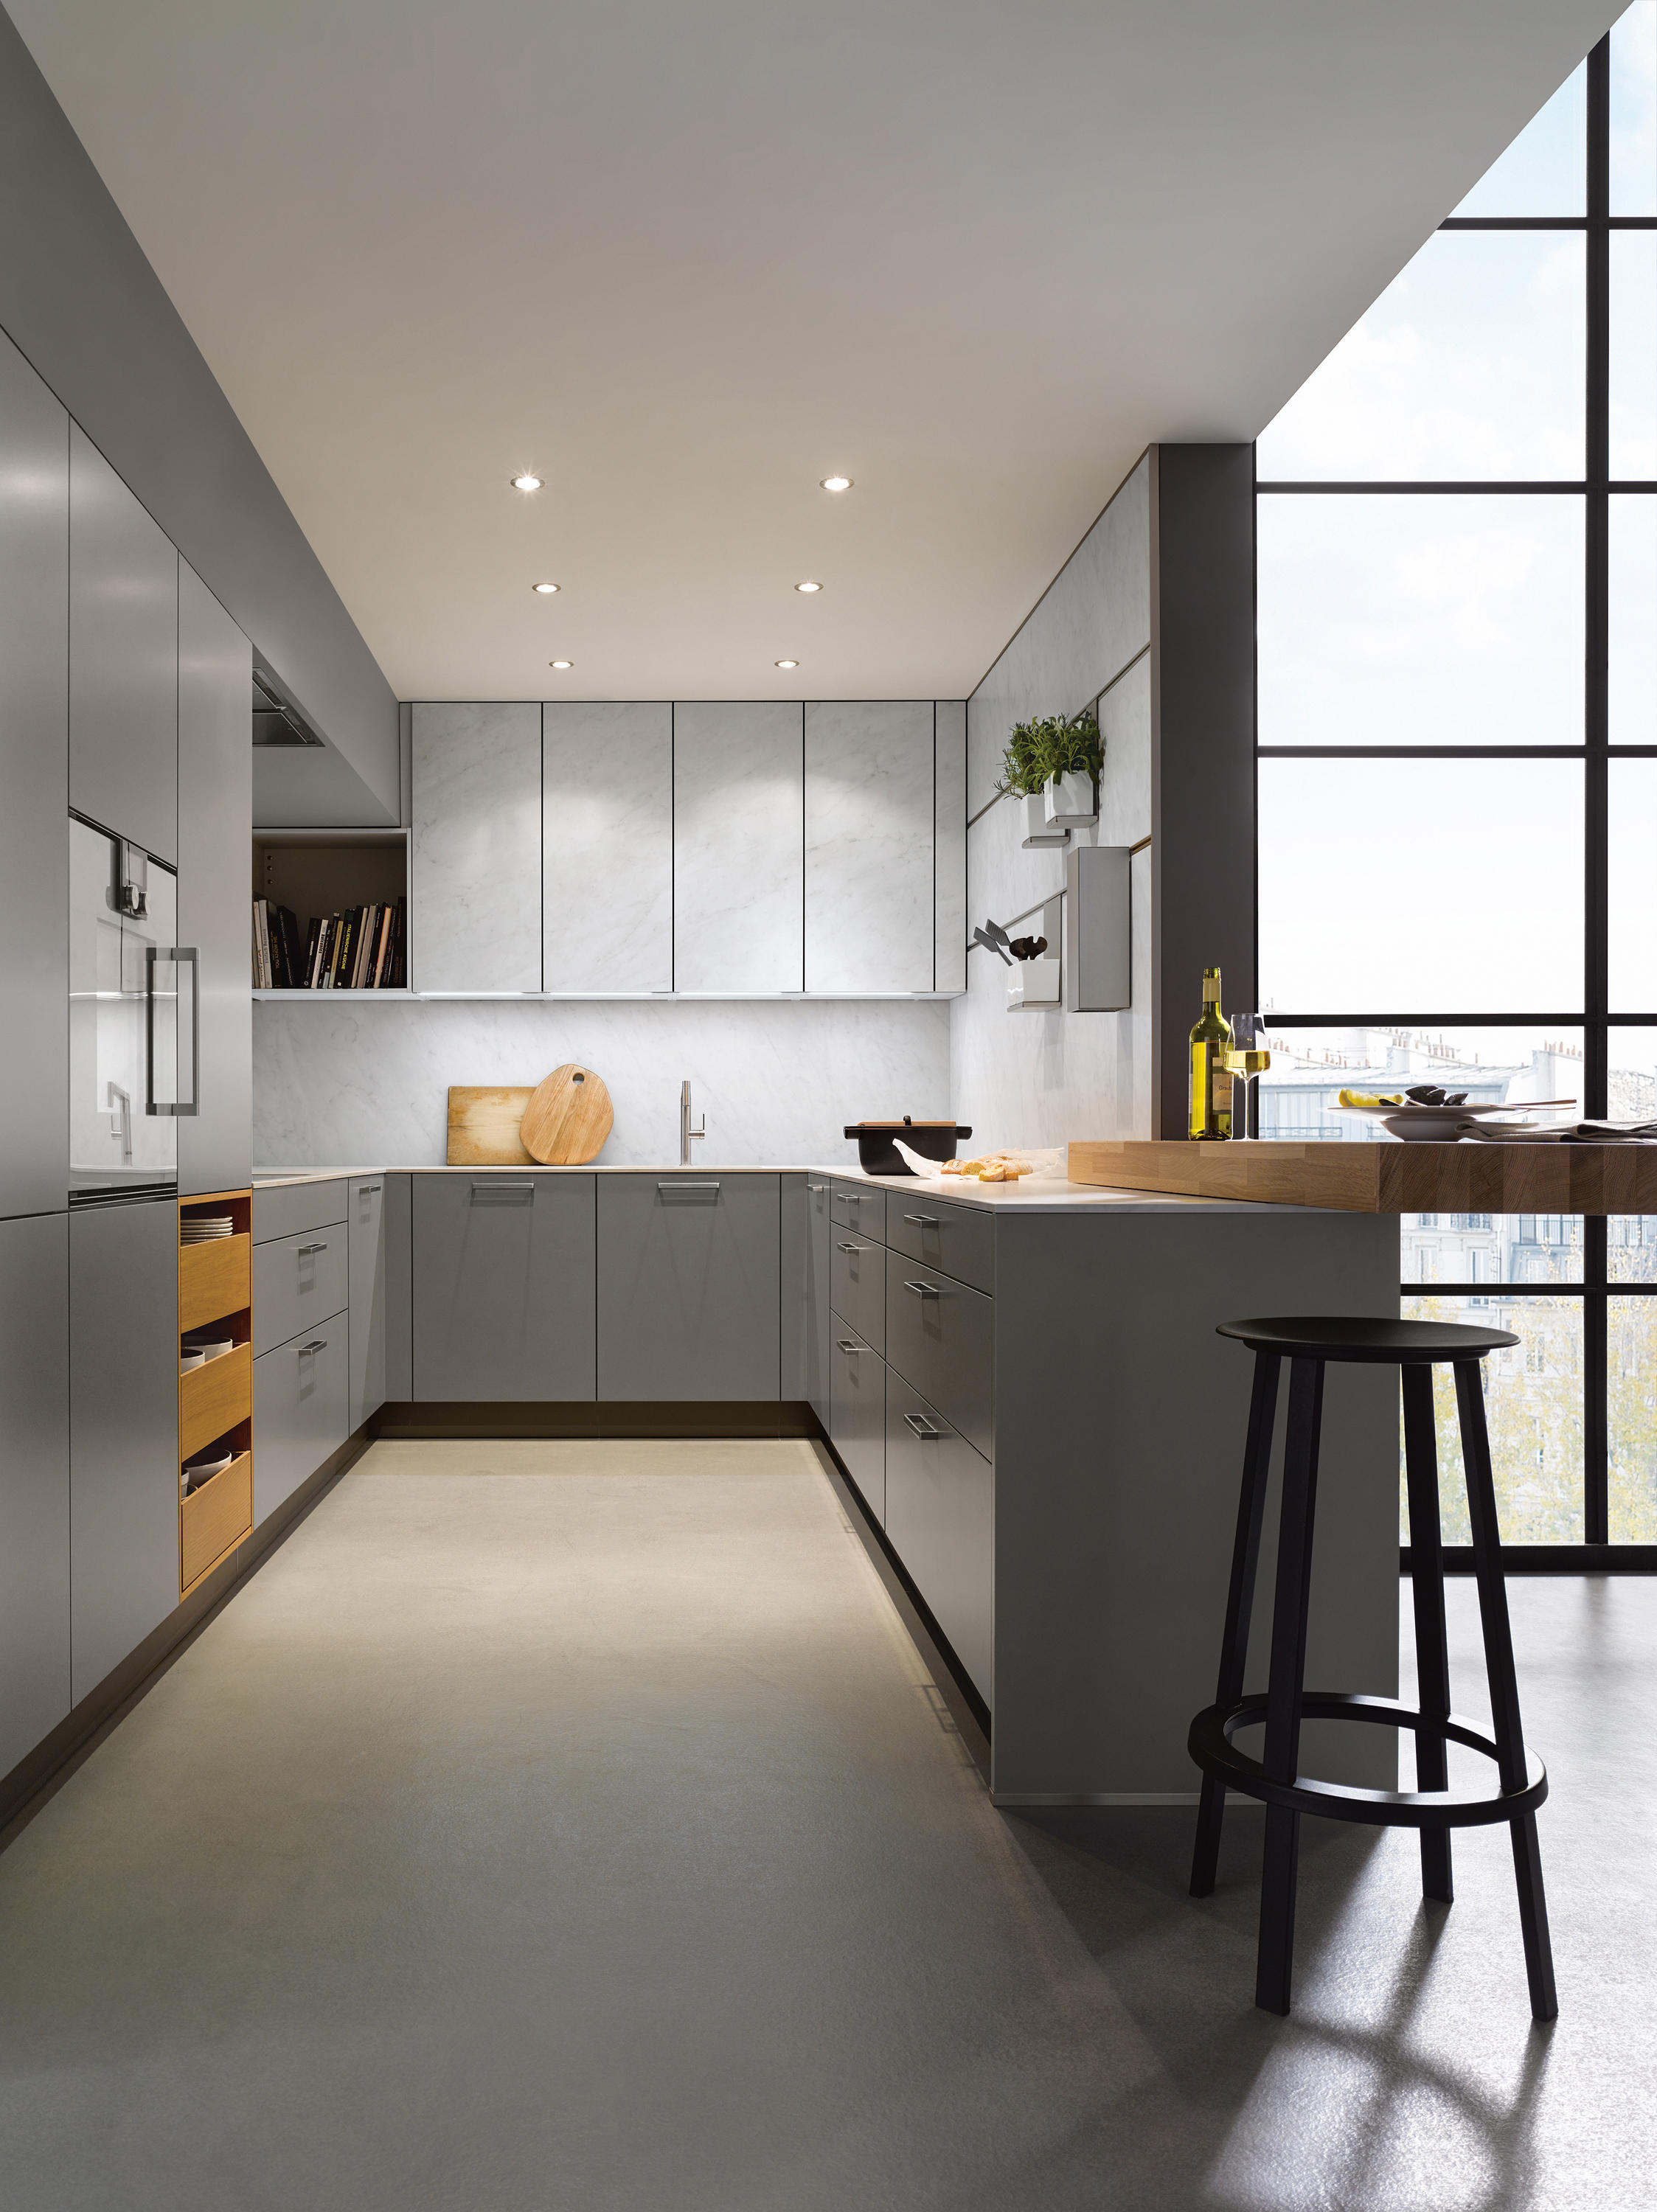 Next125 Küche Katalog Nx 510 Agate Grey Matt Velvet Fitted Kitchens From Next125